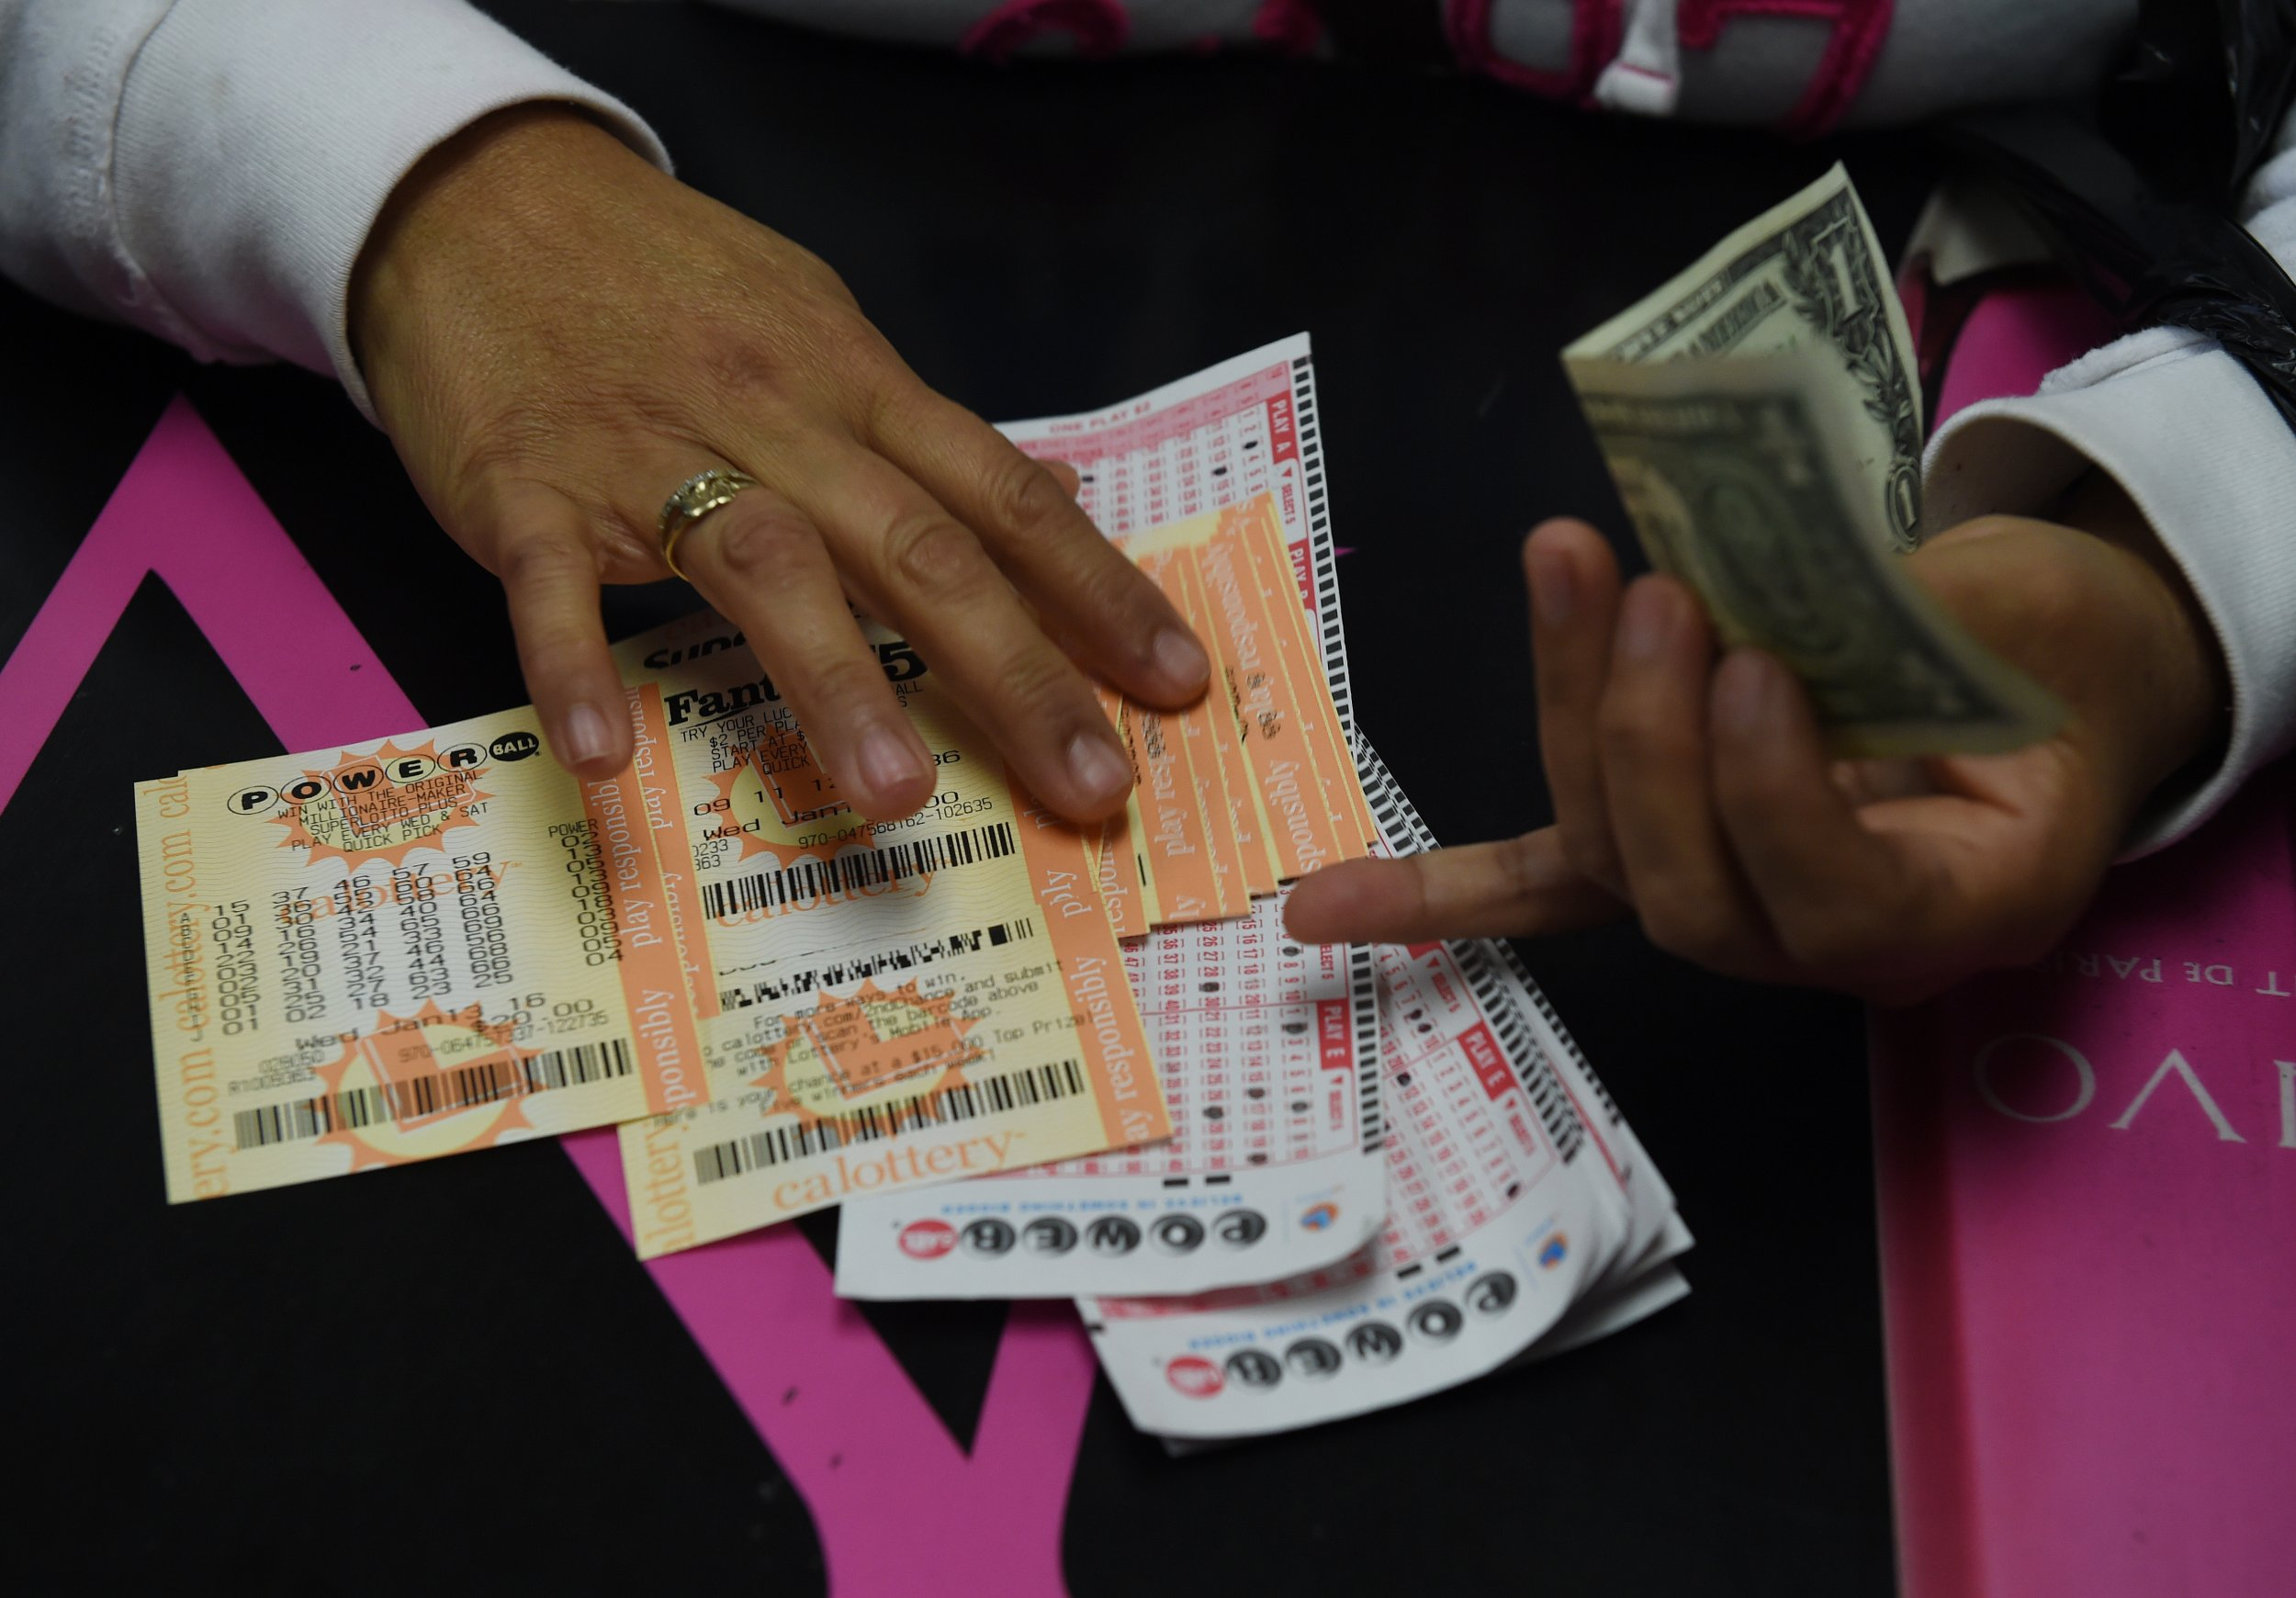 powerball ticket purchase